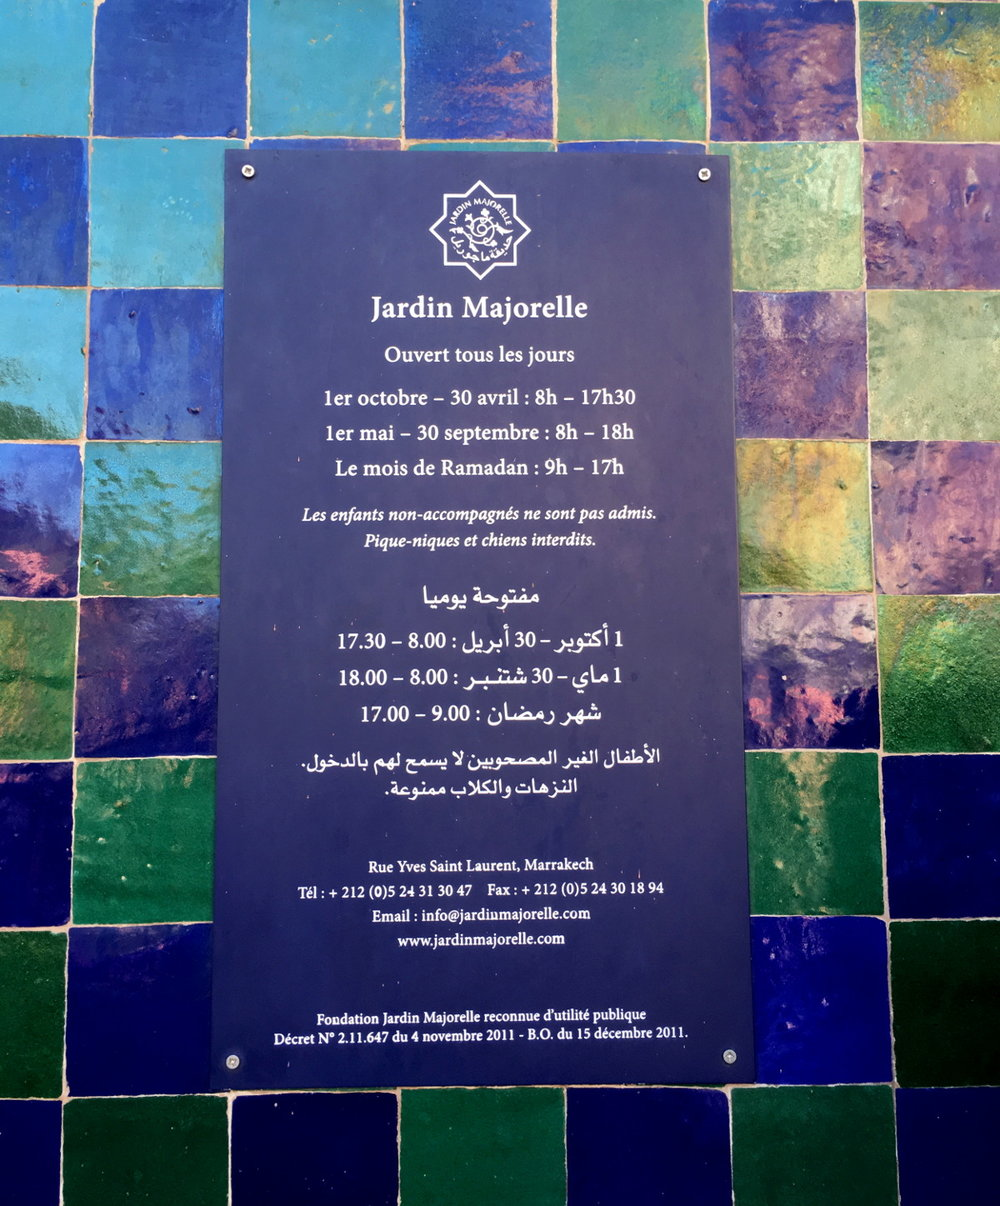 Marrakech Marrakesh Morocco Tourist Tips and travel information city guide how to what to know before you visit where to stay hotels riads Jardin Majorelle Majorelle Garden hours of operation open and close